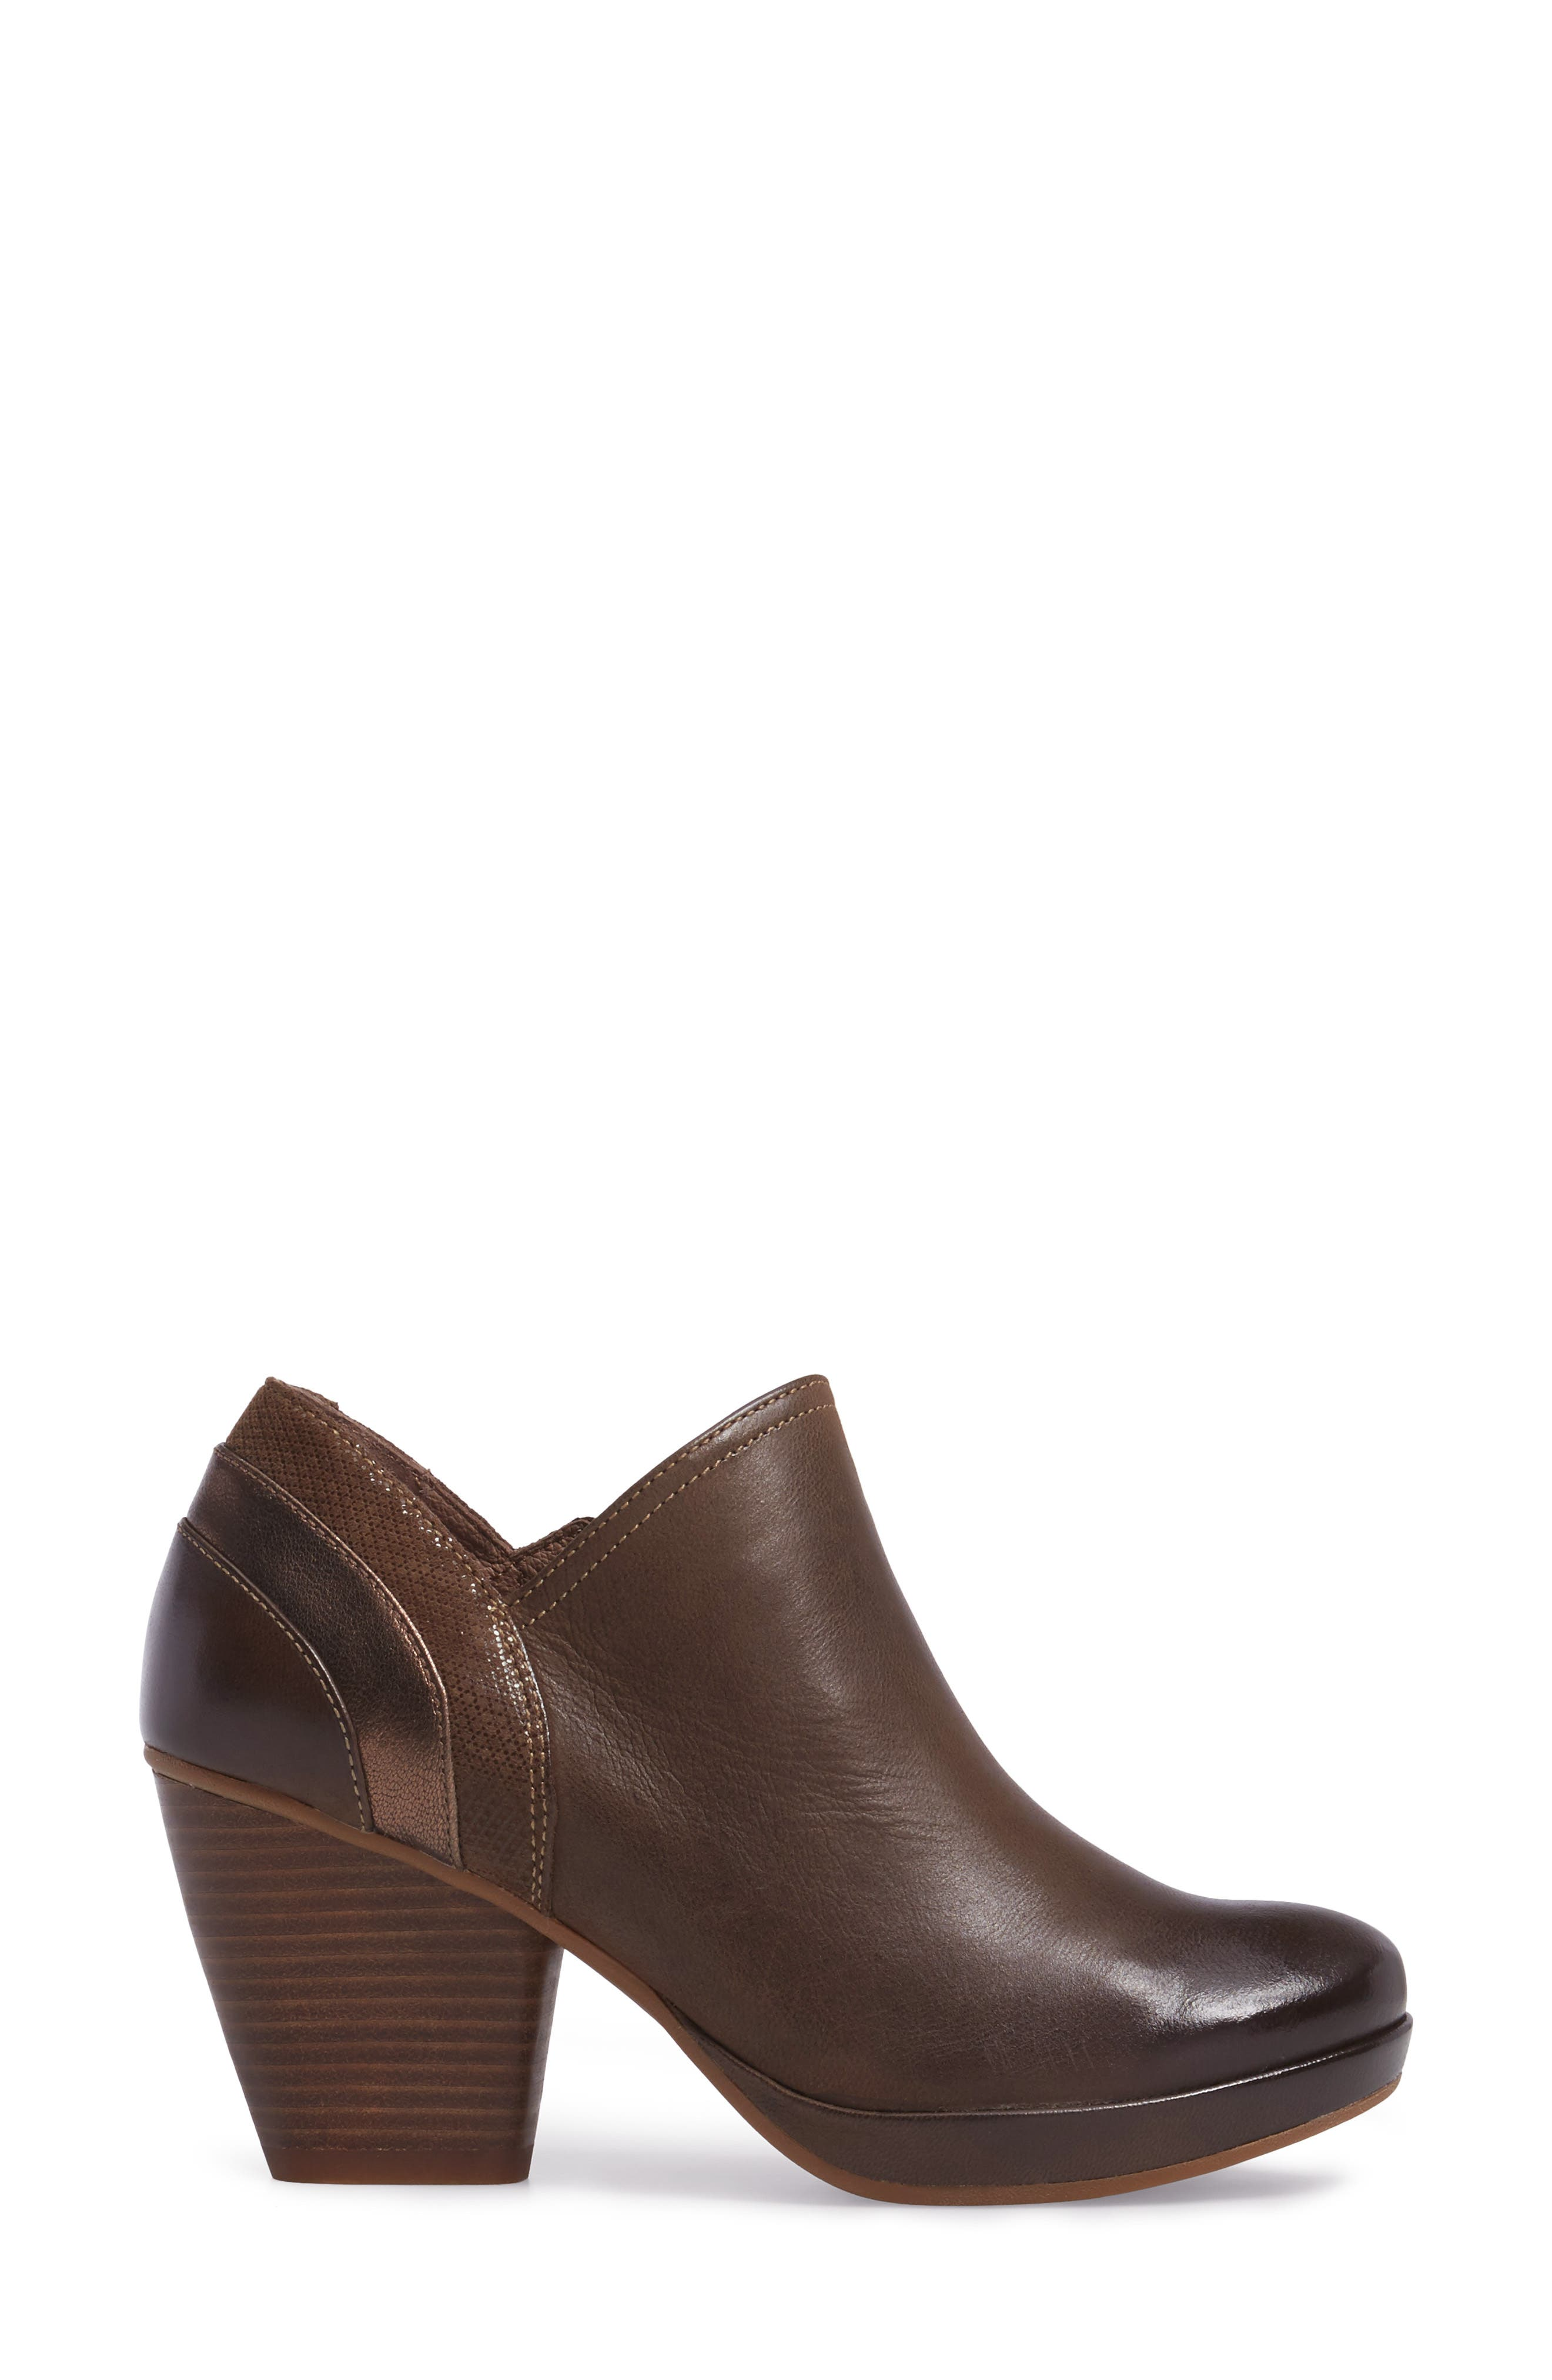 Marcia Bootie,                             Alternate thumbnail 3, color,                             Teak Burinished Leather